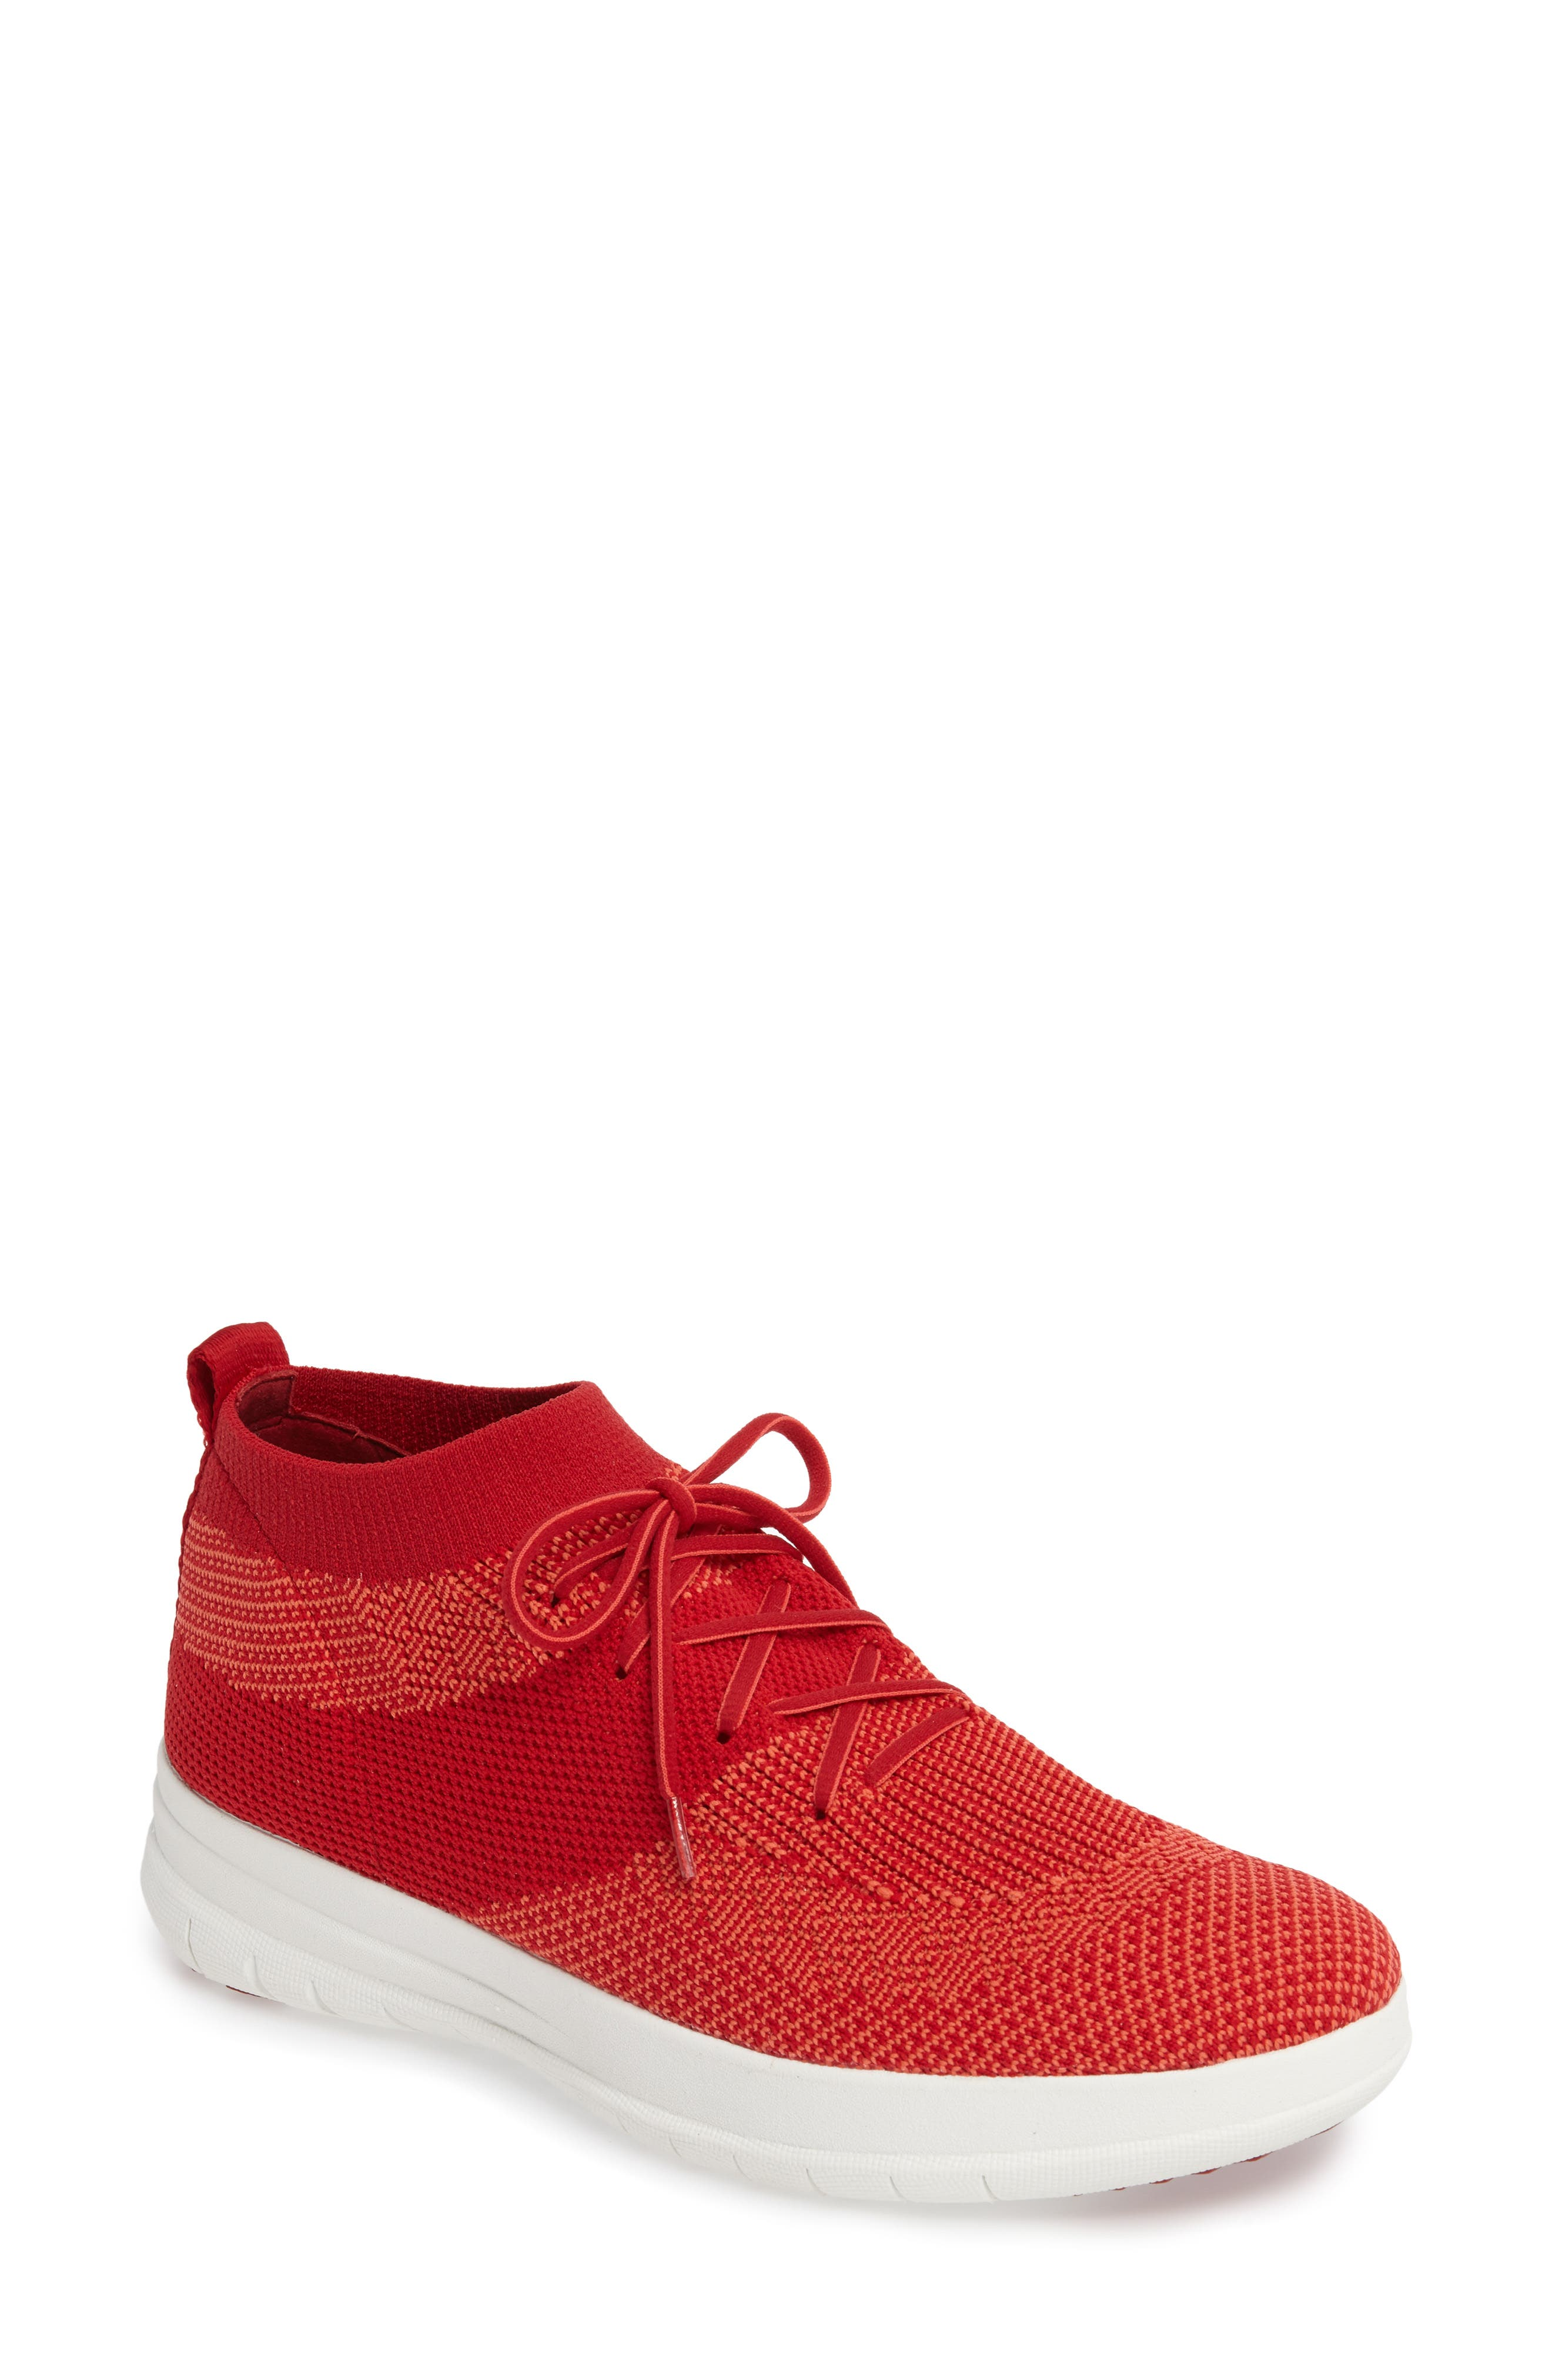 FitFlop™ Überknit High Top Sneaker (Women)